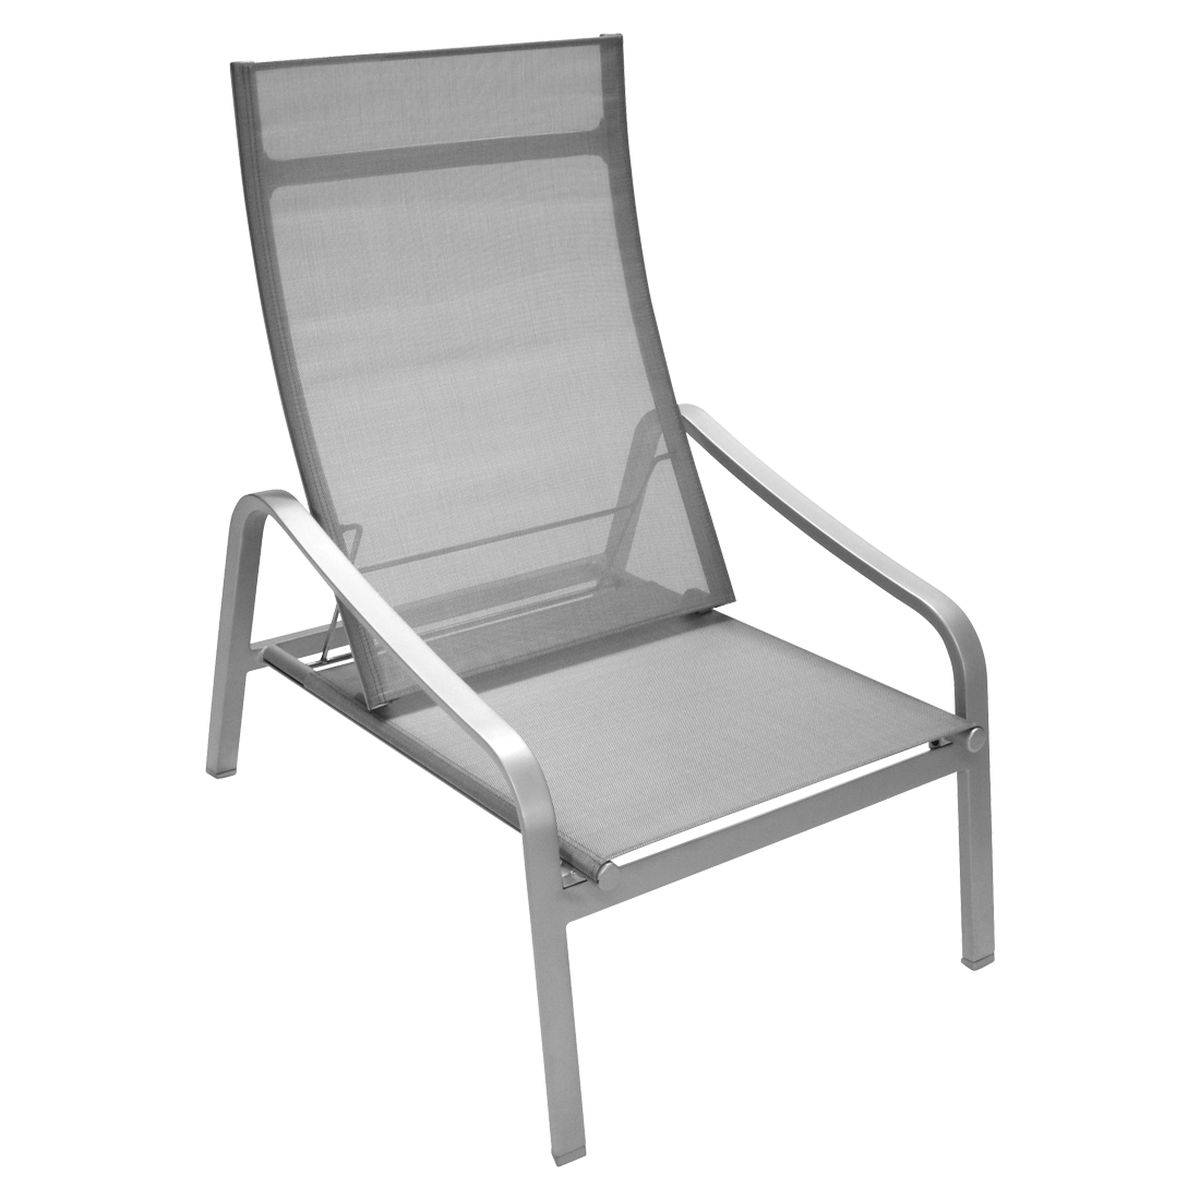 18 fermob bistro high chair folding chairs uk home remodeling and renovation ideas 1900 - Table jardin hartman nanterre ...